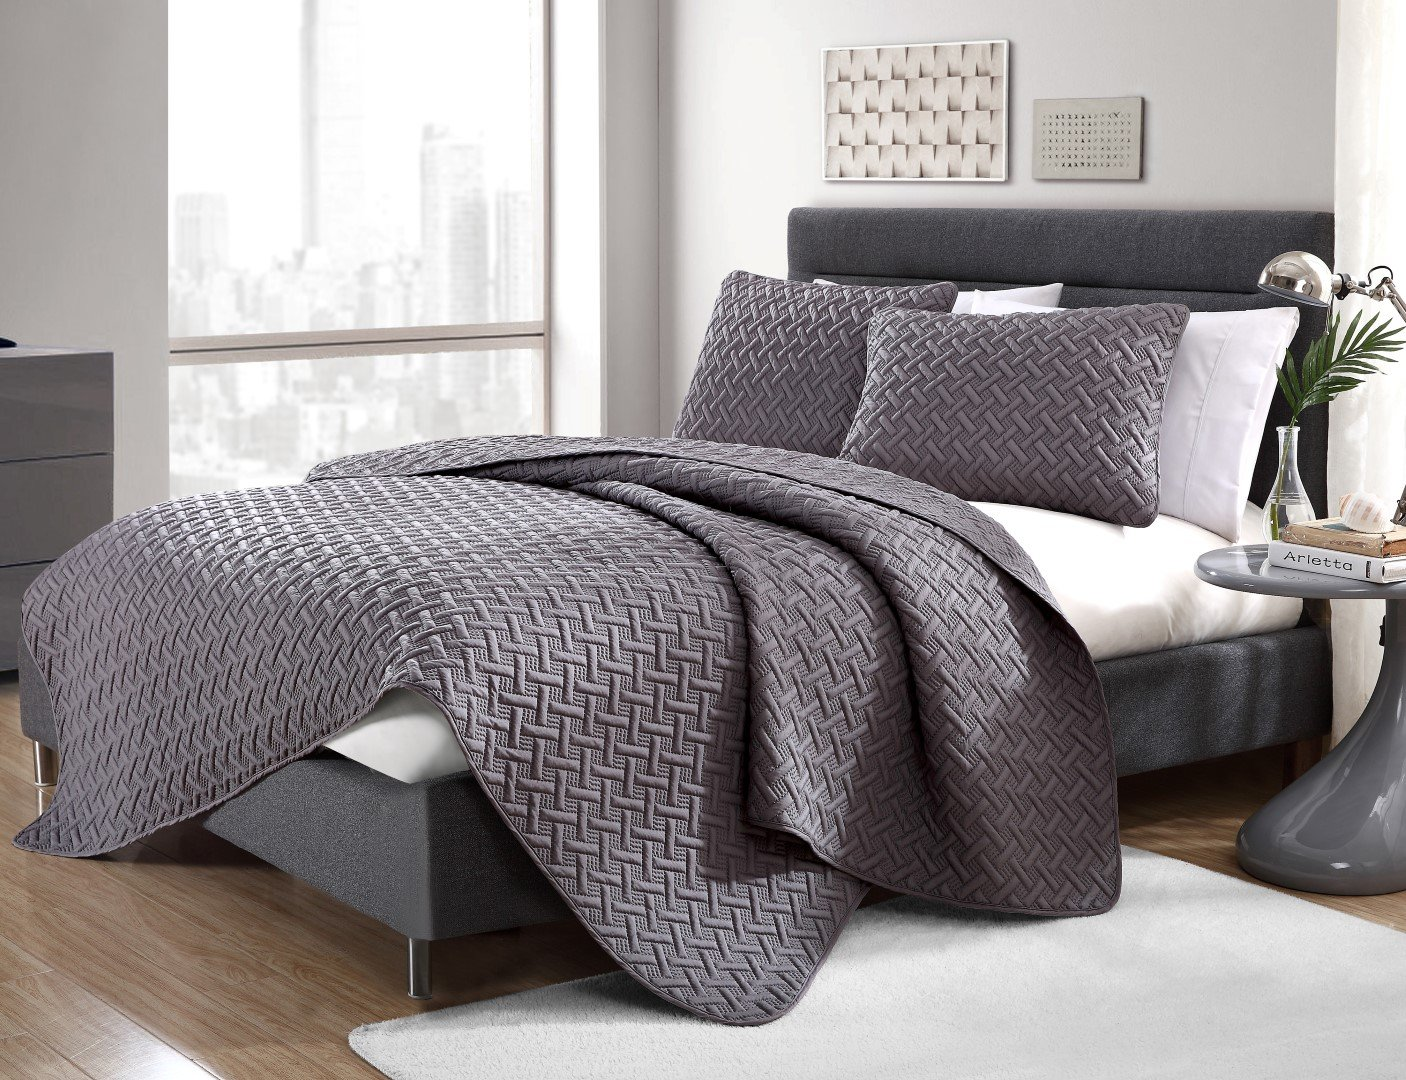 VCNY Home Luxurious Geometric Pattern Quilt Set by VC New York, Grey Victoria Classics Company Nina Quilt